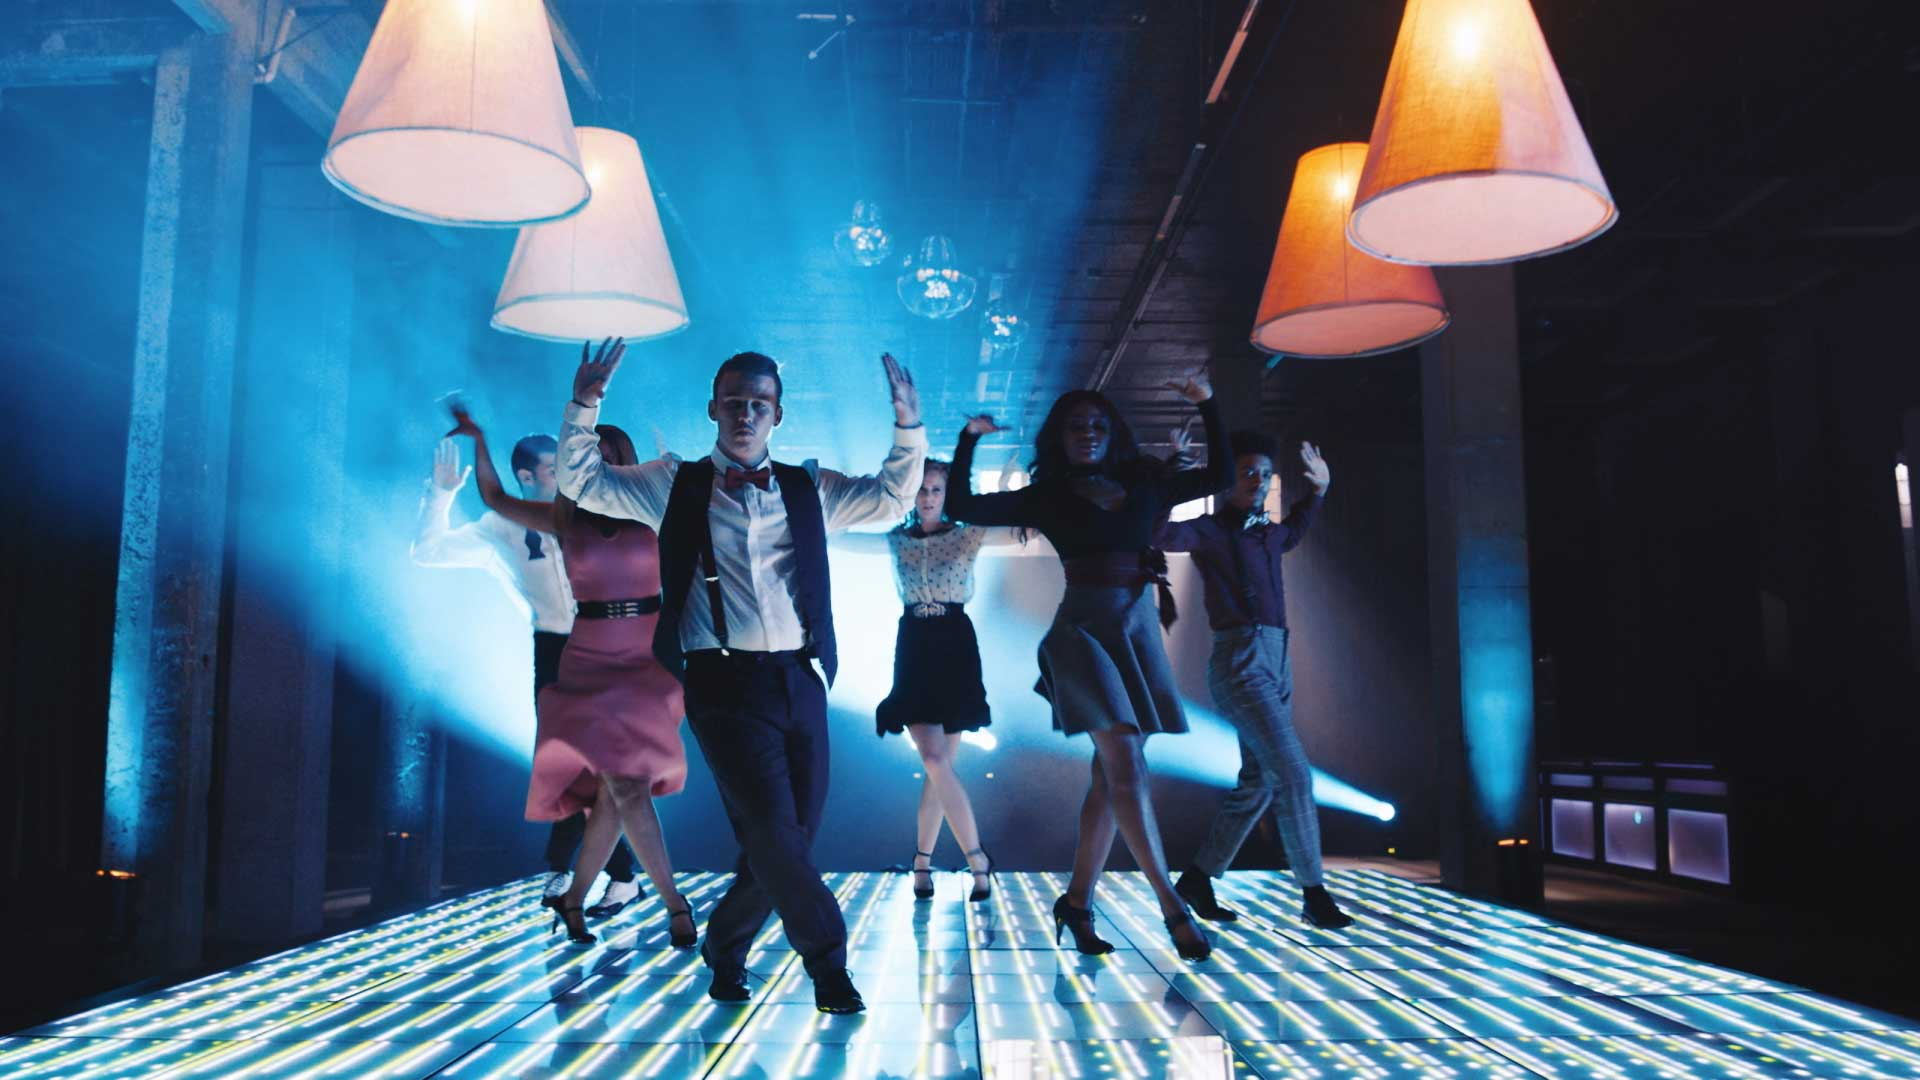 Dancing on stage. Still from Toyota Yaris commercial.